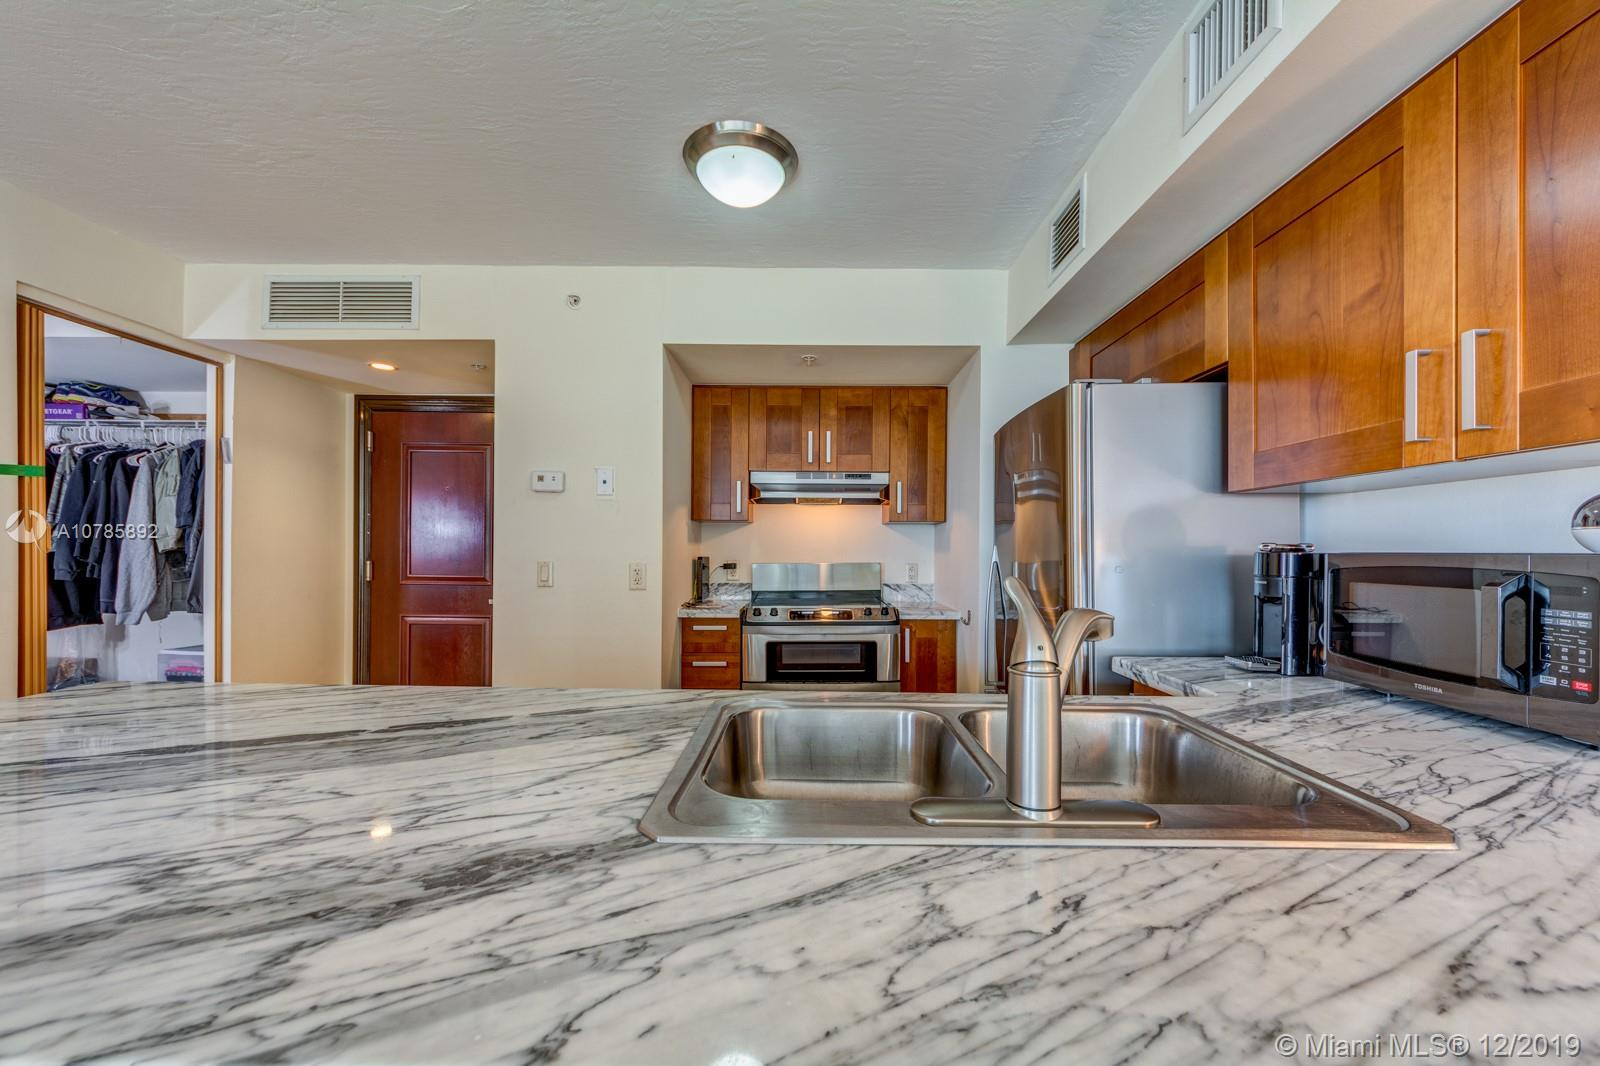 Very rare CORNER residence- only a few unit offer 2 BALCONIES. Beautiful SW Exposure. Spacious open concept & modern 1 bedroom + den (can be used as 2nd bedroom) washer & dryer in the condo. Large master suite & closet - Breathtaking views of intracoastal, Ocean and spectacular sunsets! Ocean front Boutique style building offers full service, valet, management on site, beach service, fitness center. The Spiaggia is located in the heart of Surfside, steps from great shopping & dinning on Harding District and Bal Harbour Shops ,Surfside Community Center- walking distance to house of worship & in same block to Grand Beach Hotel. Special Assessment paid in  FULL by seller !! Tenant until November 2021 (paid the full year )$2,300 PM . Du to Covid :Can been shown only with offer to purchase .